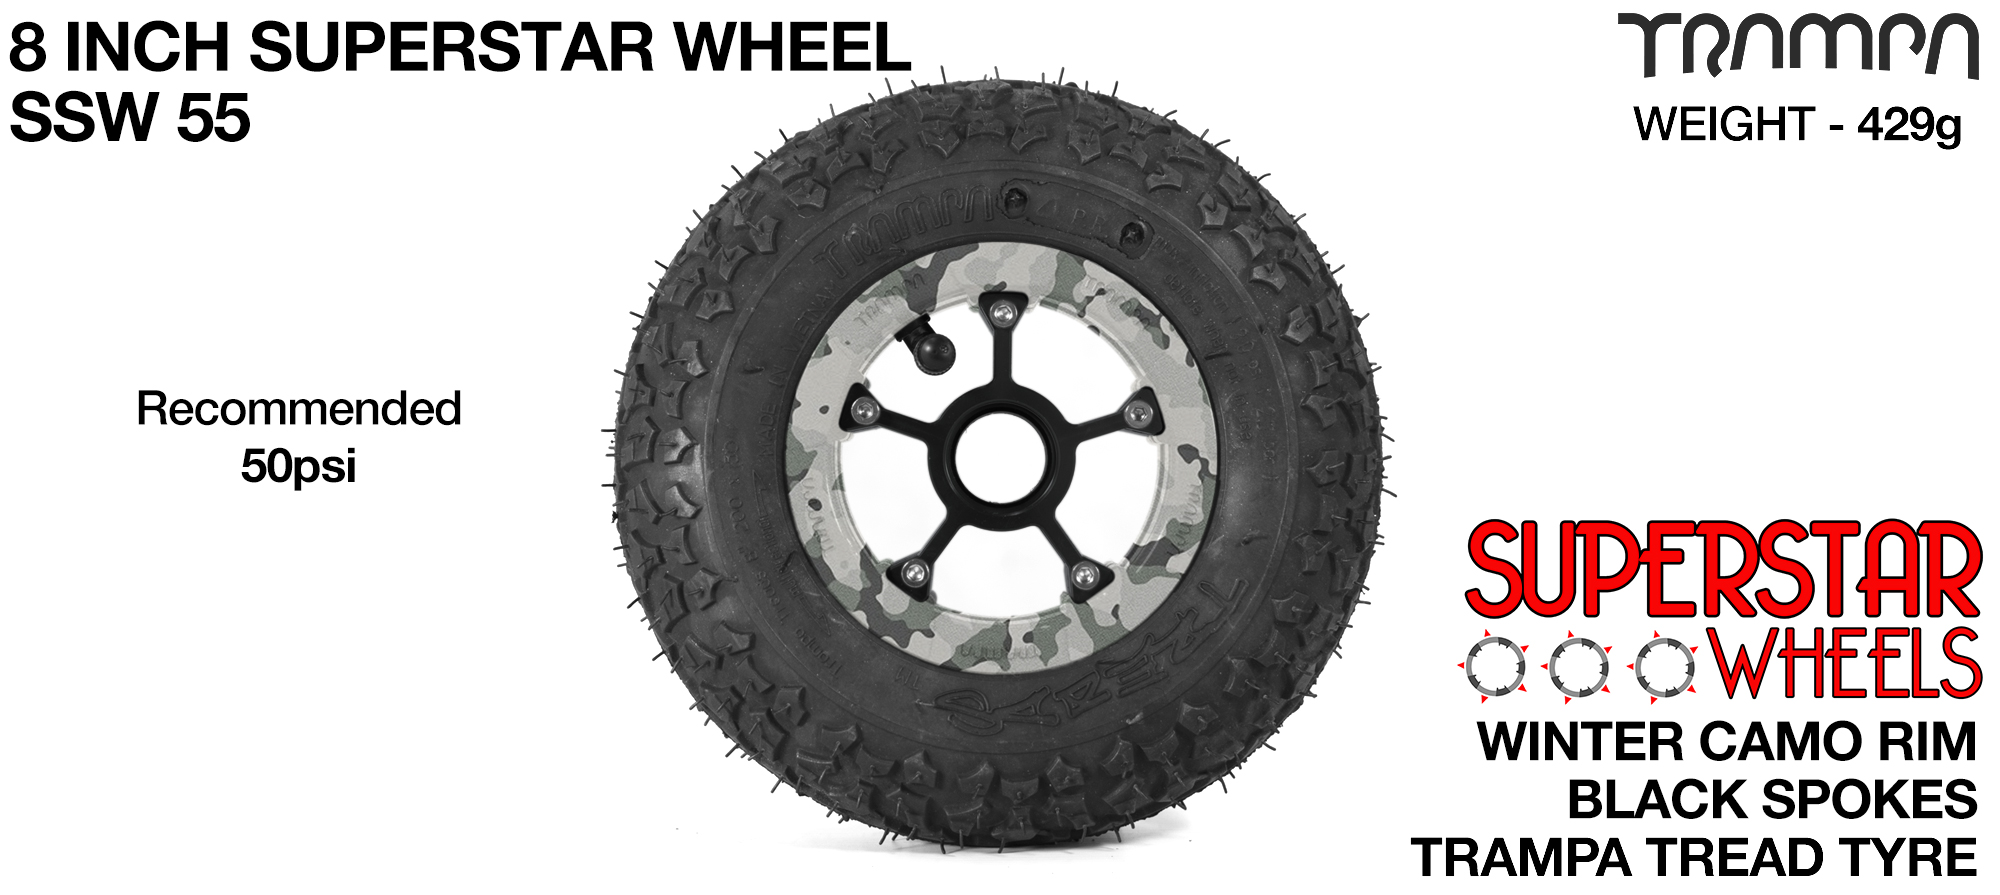 Superstar 8 inch wheel - Winter Camo Rim with Black Anodised spokes & TRAMPA TREAD 8 Inch Tyres